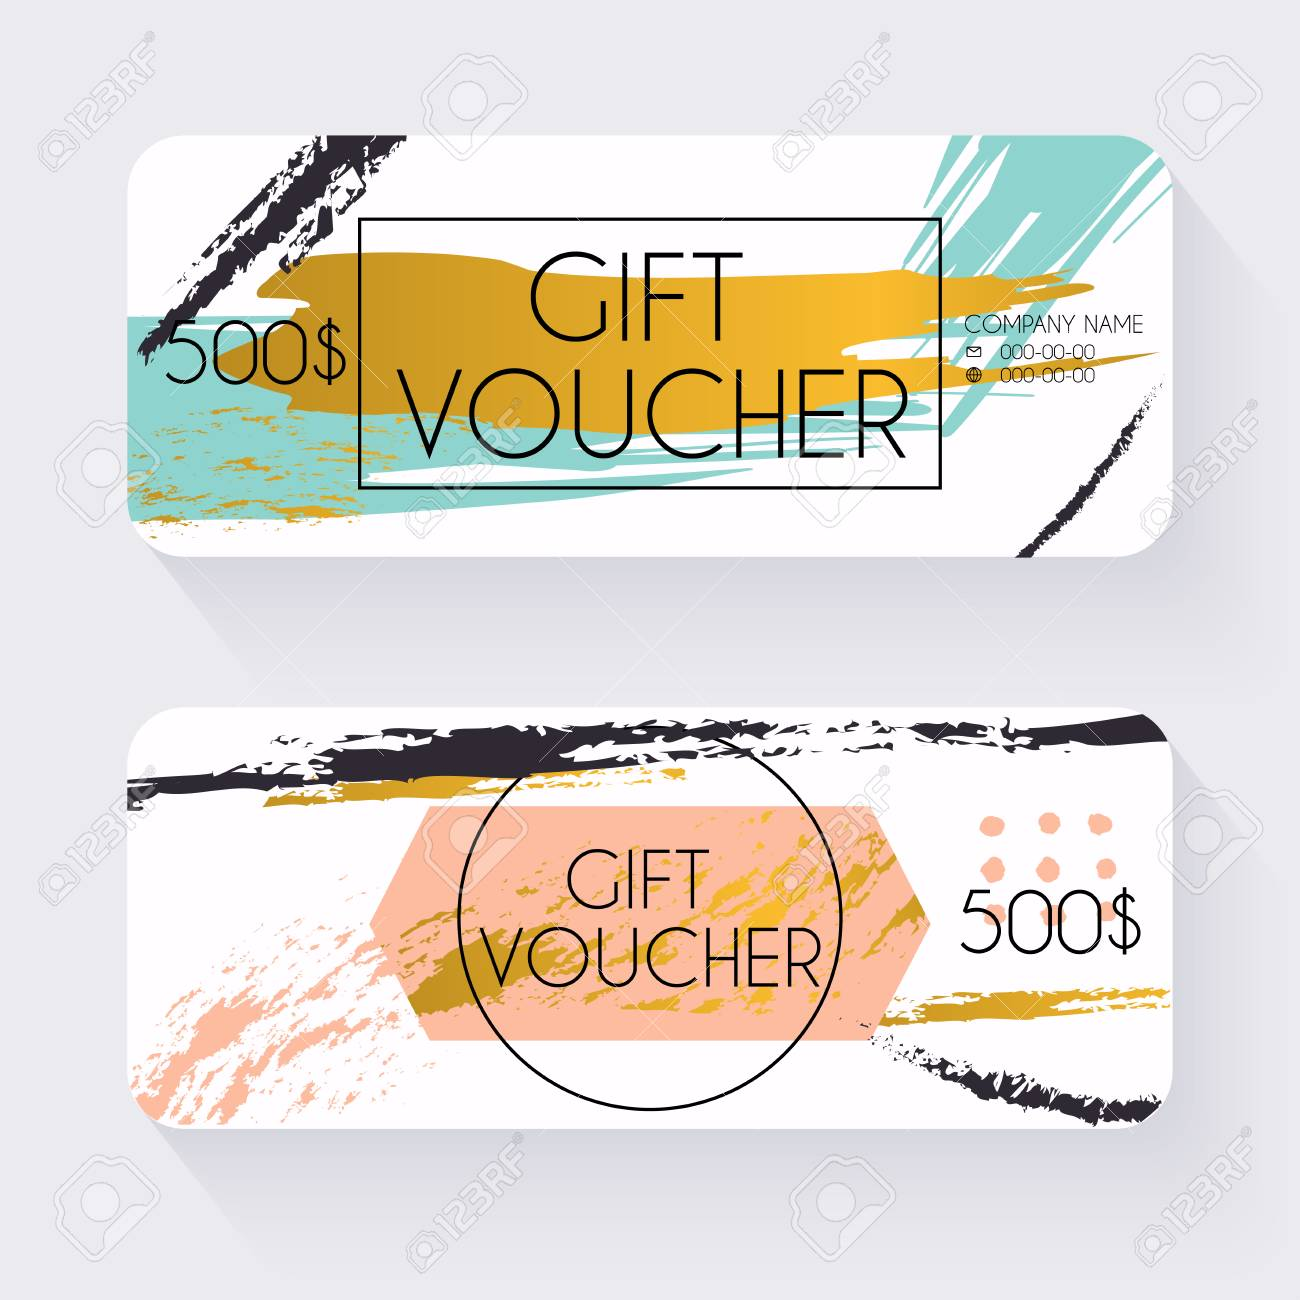 Gift voucher template with gold background gift certificate gift voucher template with gold background gift certificate background design gift coupon voucher yadclub Gallery